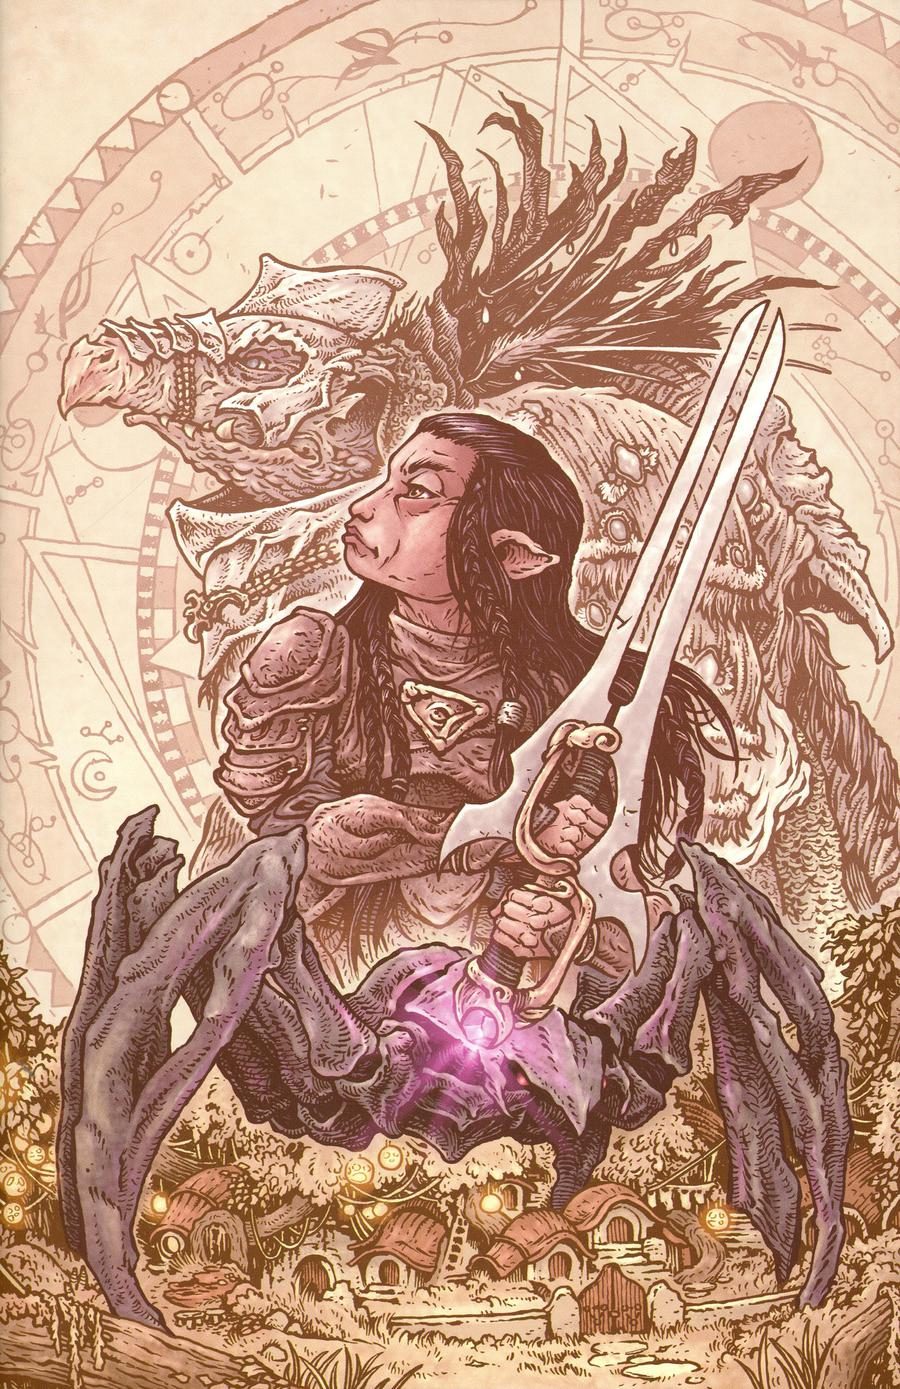 Jim Henson's The Dark Crystal: Age Of Resistance #2 (2019)